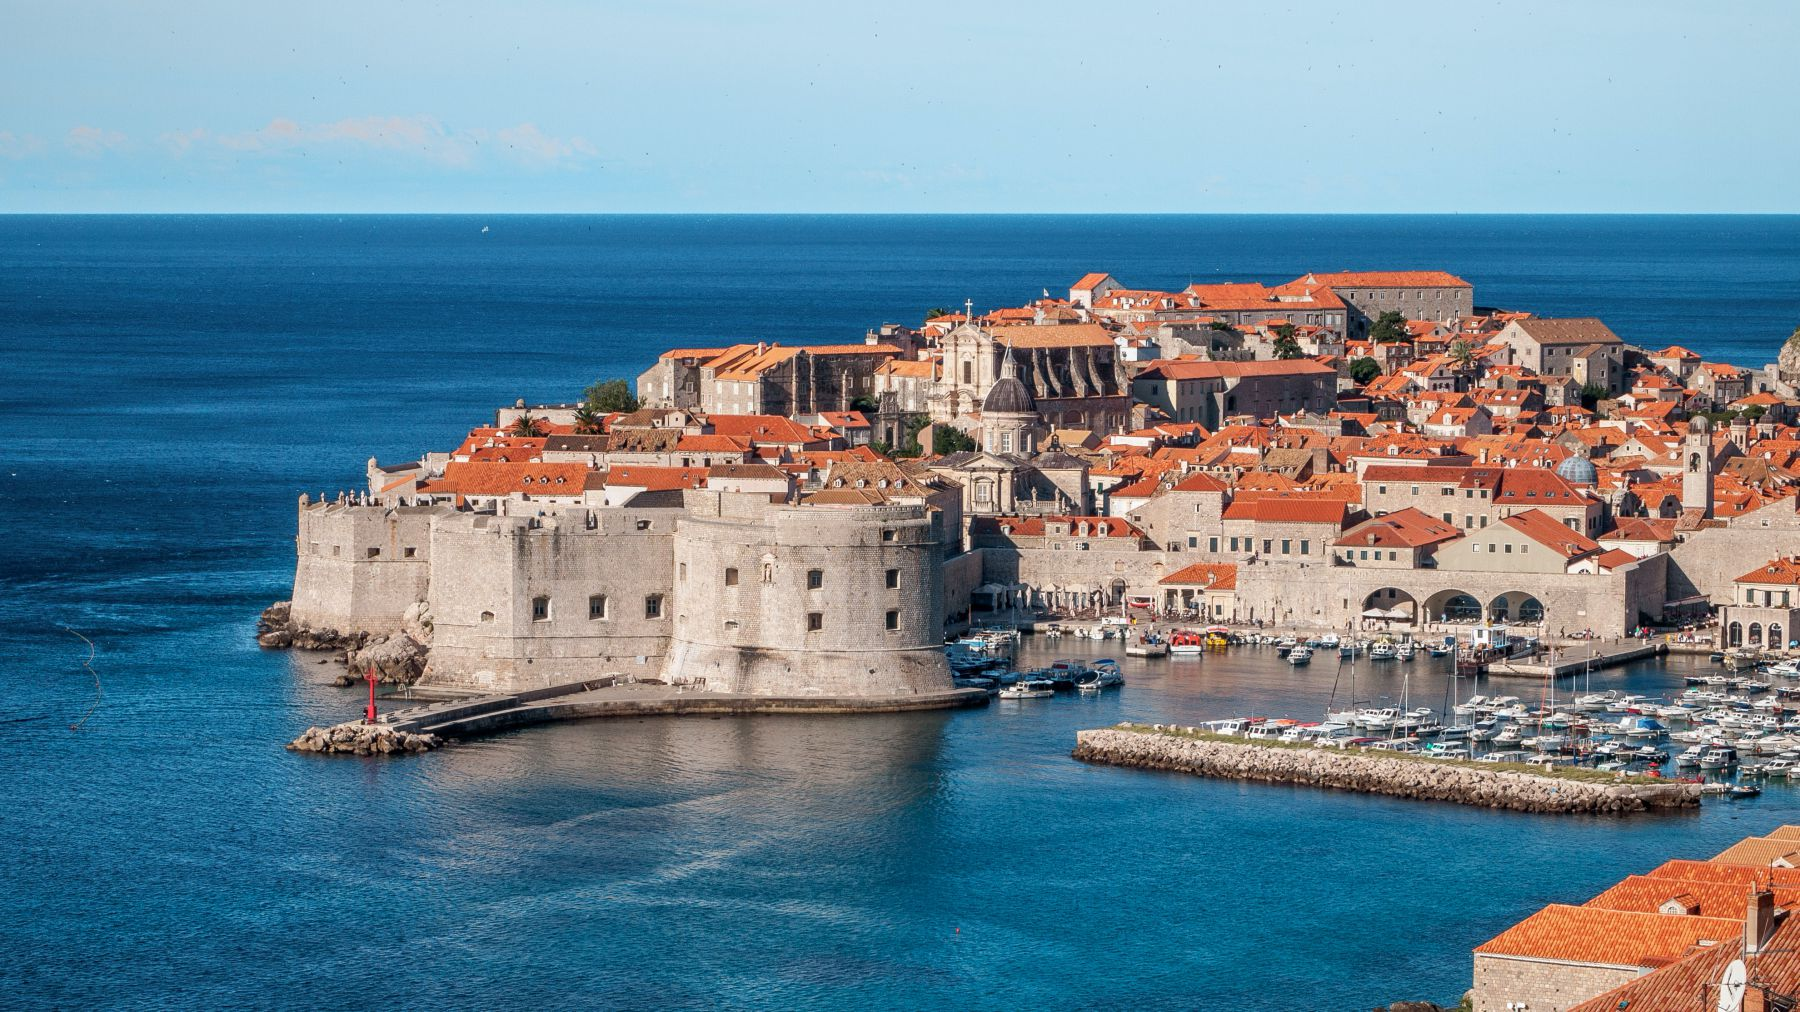 Dubrovnik, Croatia, Photo by Ivan Ivankovic on Unsplash